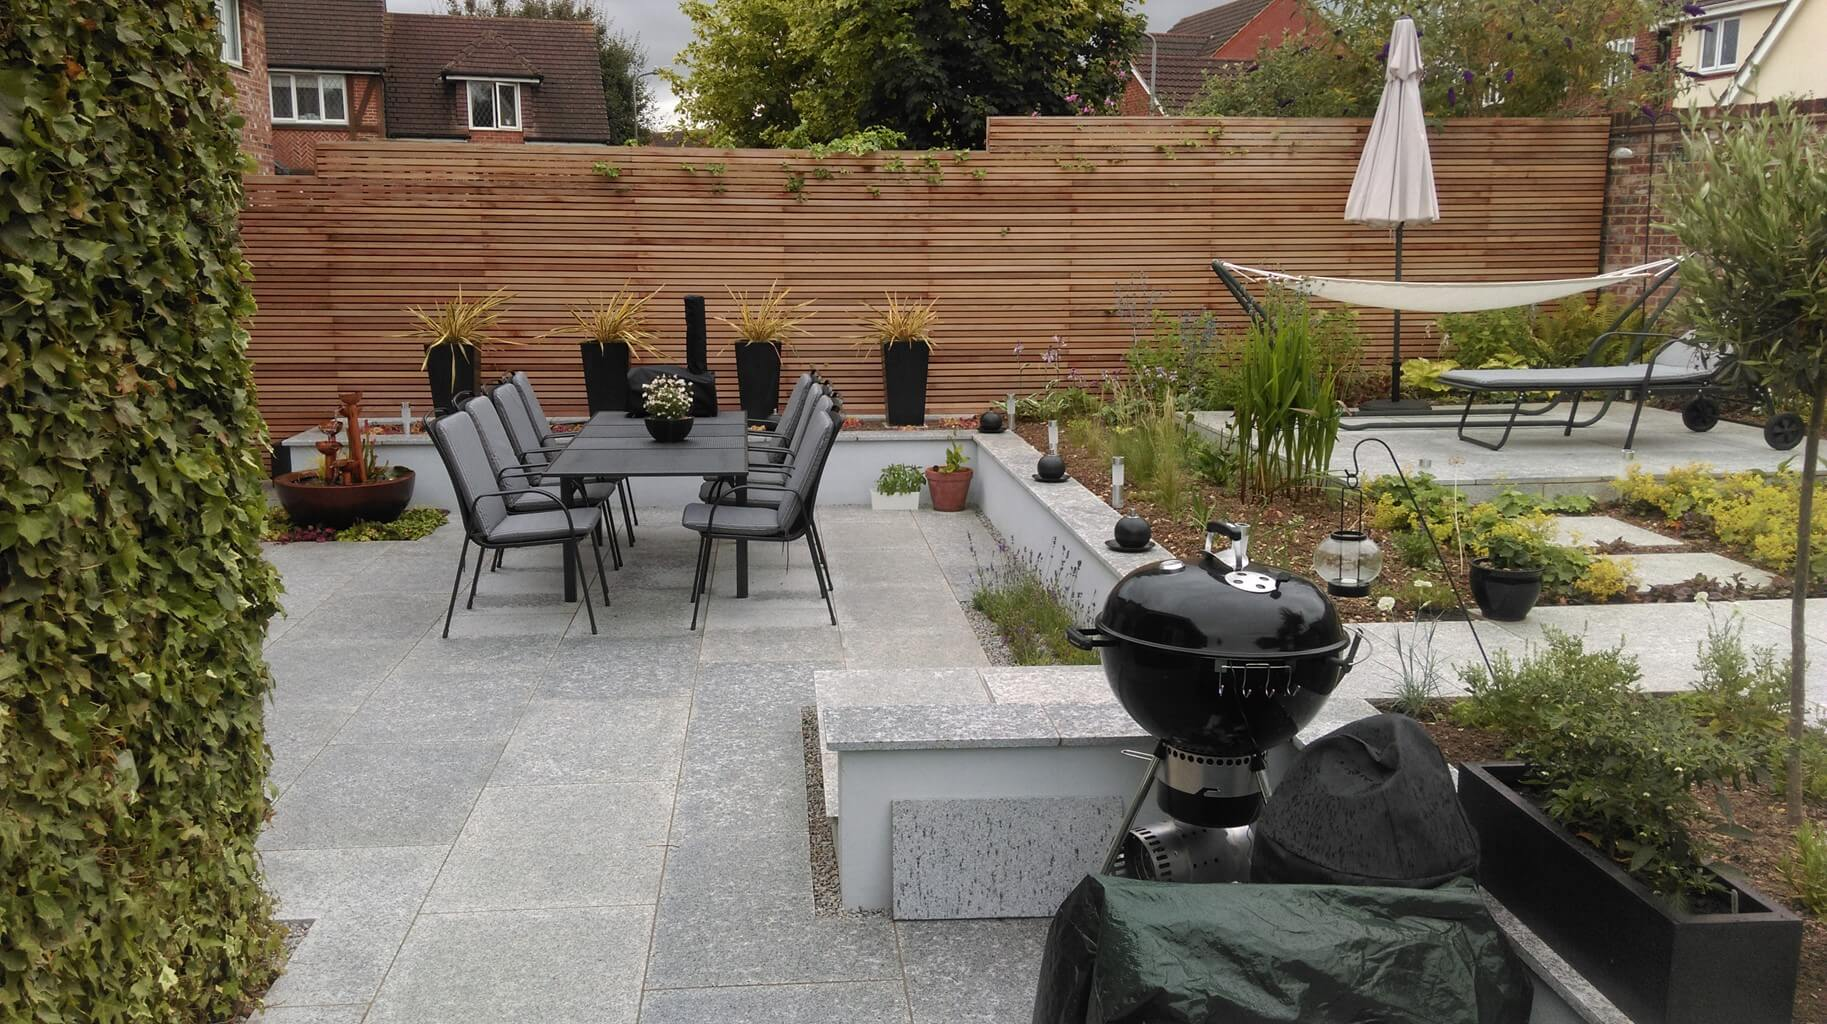 Here are s&les of some of our projects & J\u0026S Scapes - Garden Design \u0026 Build across Bucks Herts \u0026 Beds.